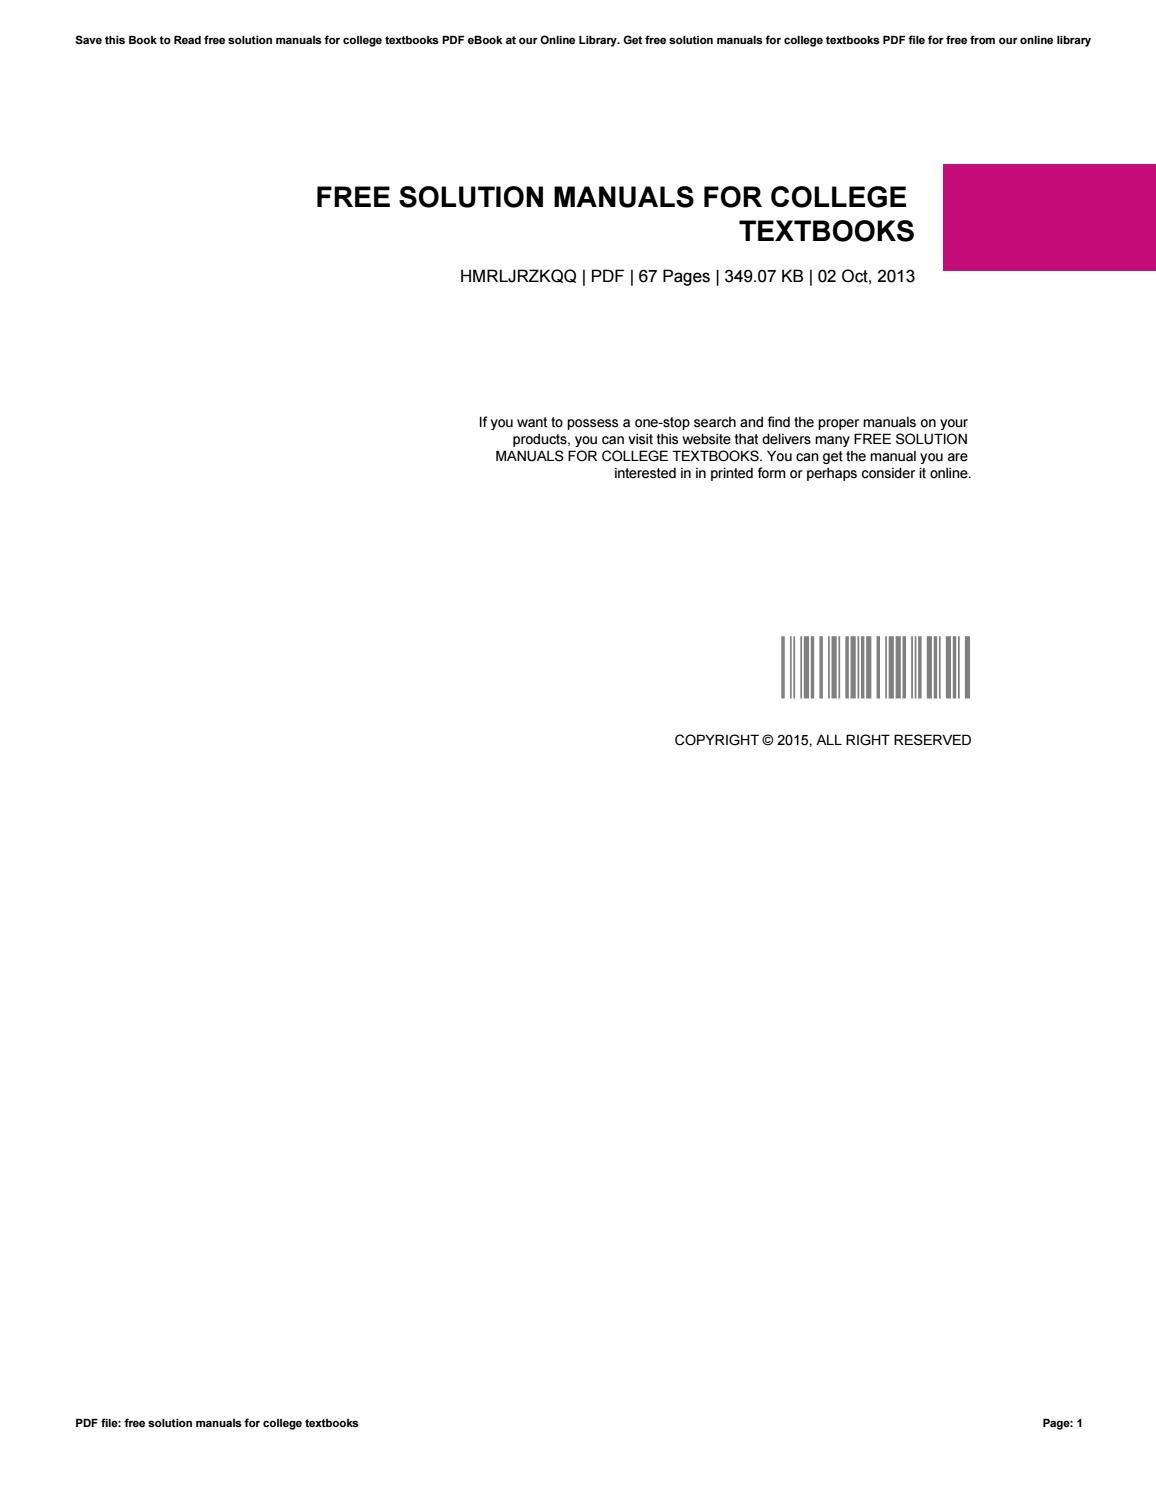 Free solution manuals for college textbooks by NickolasBernardo1600 - issuu